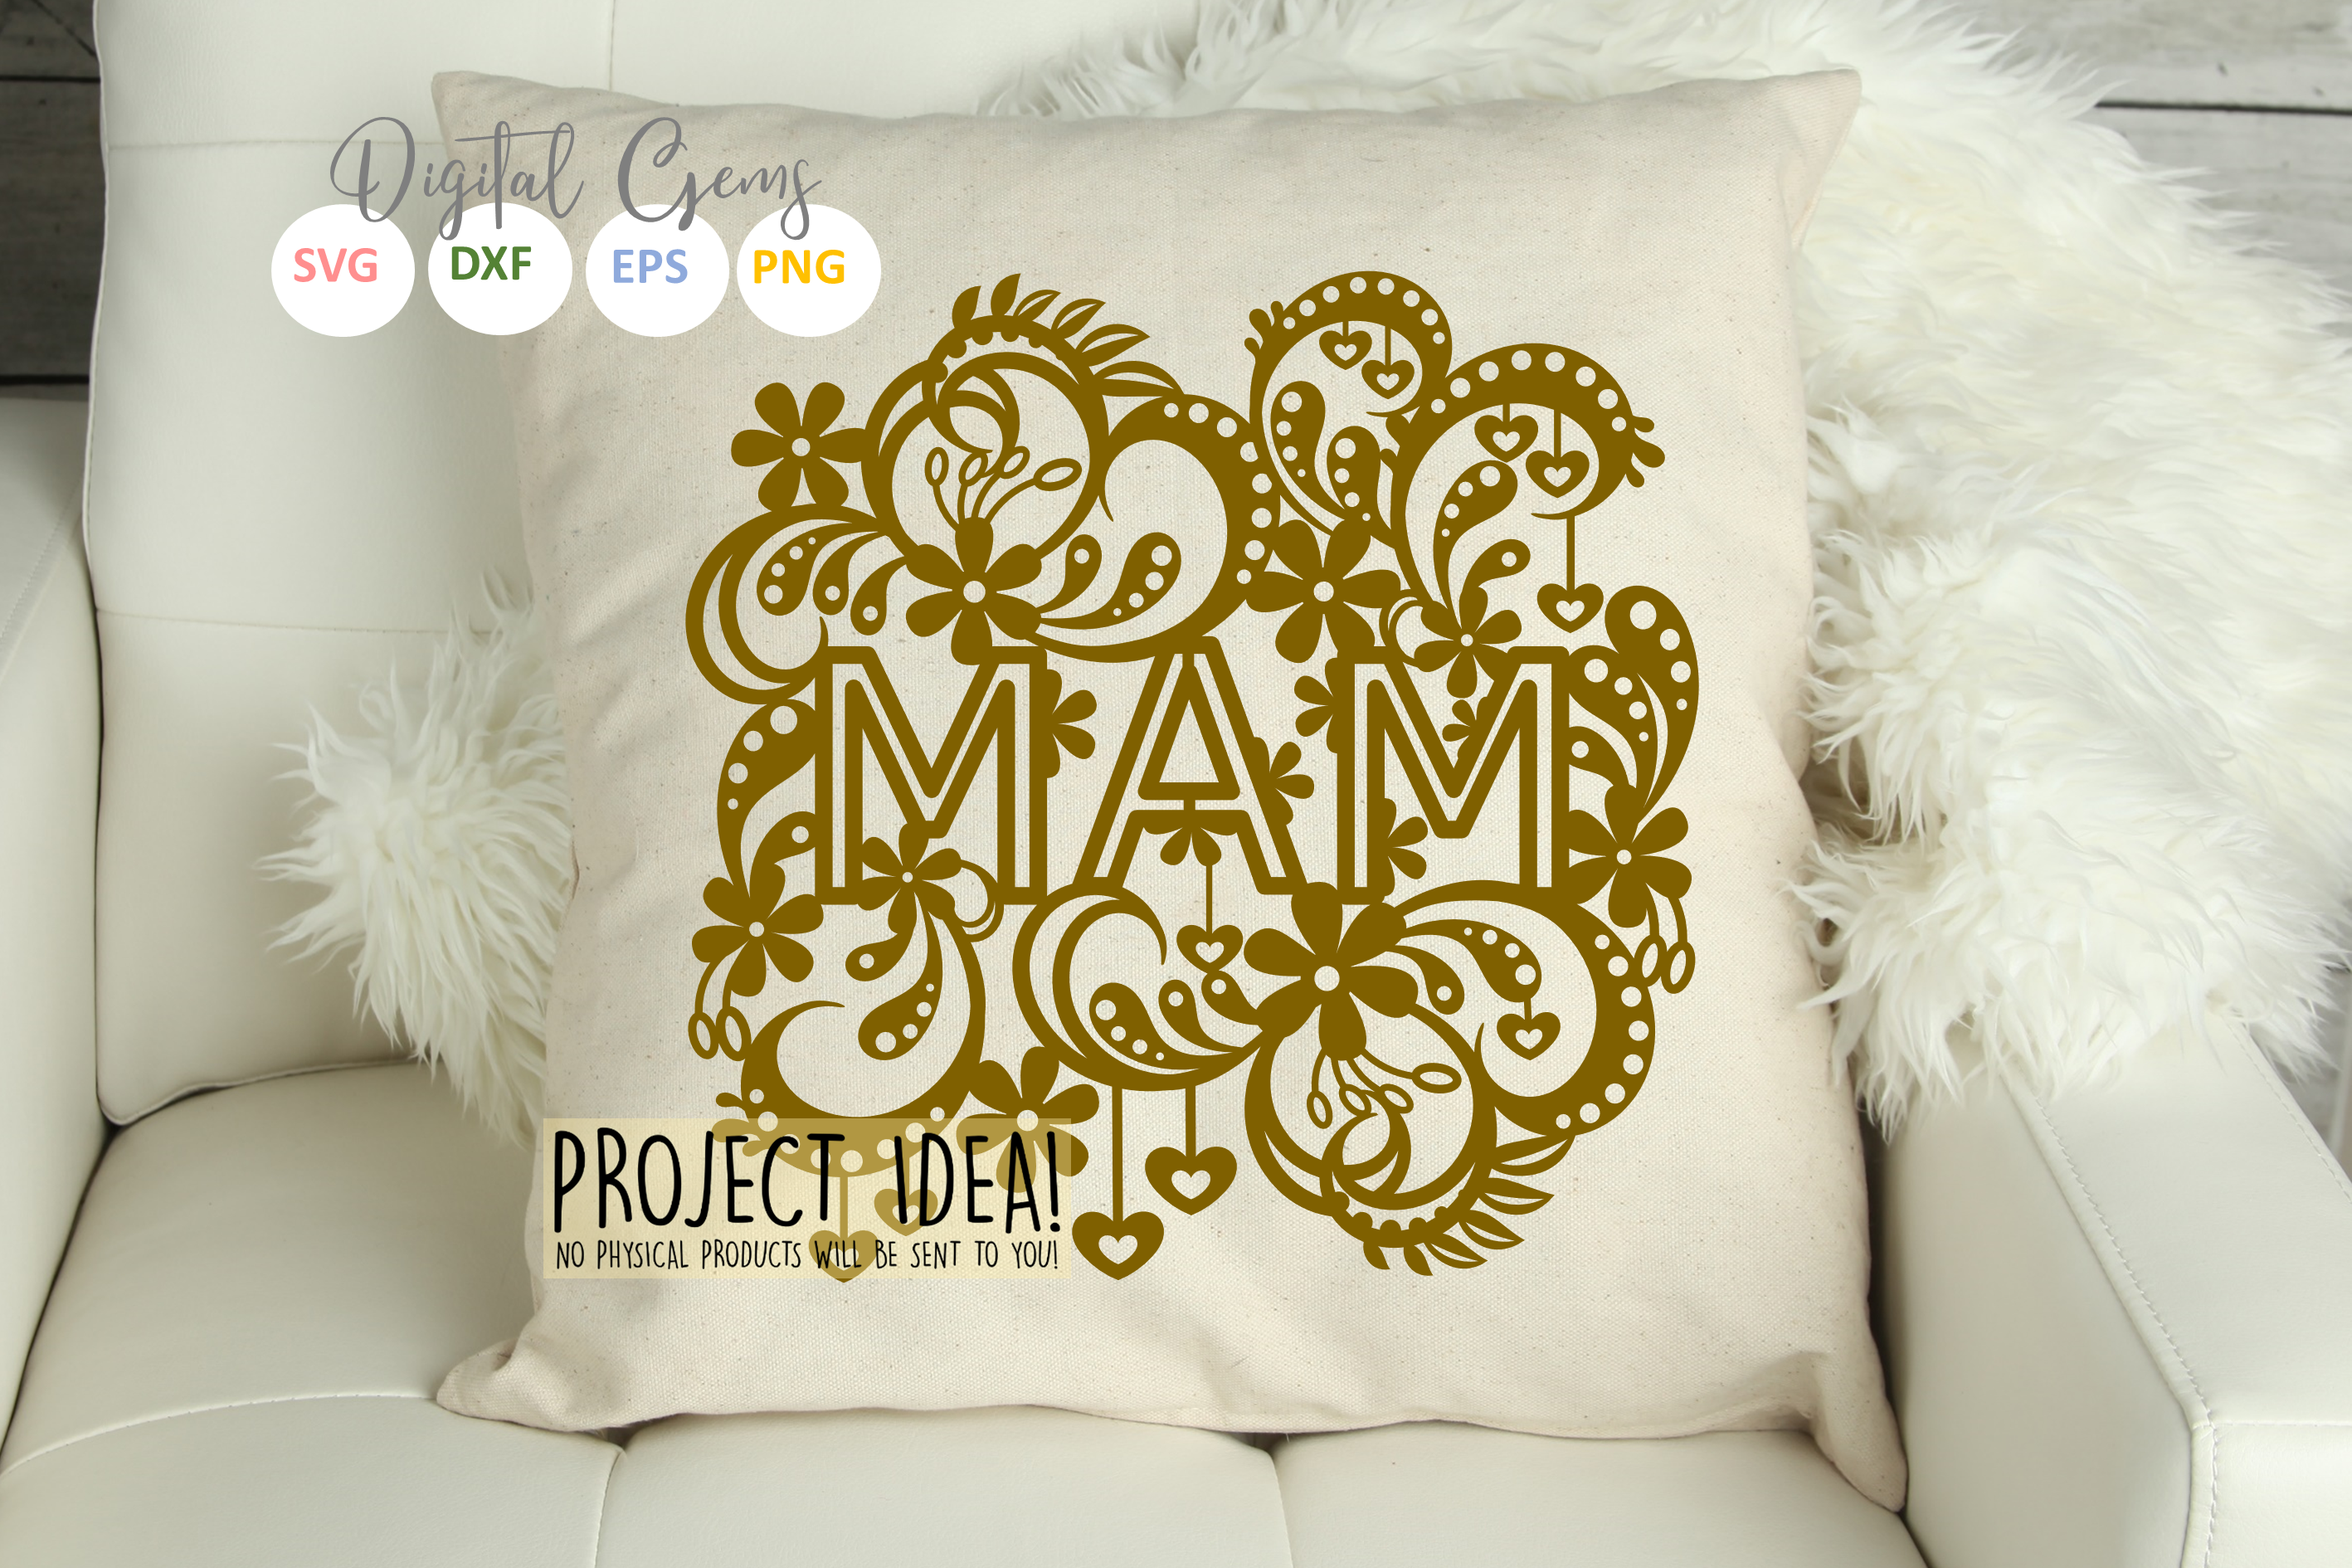 Mam paper cut design SVG / DXF / EPS files example image 4